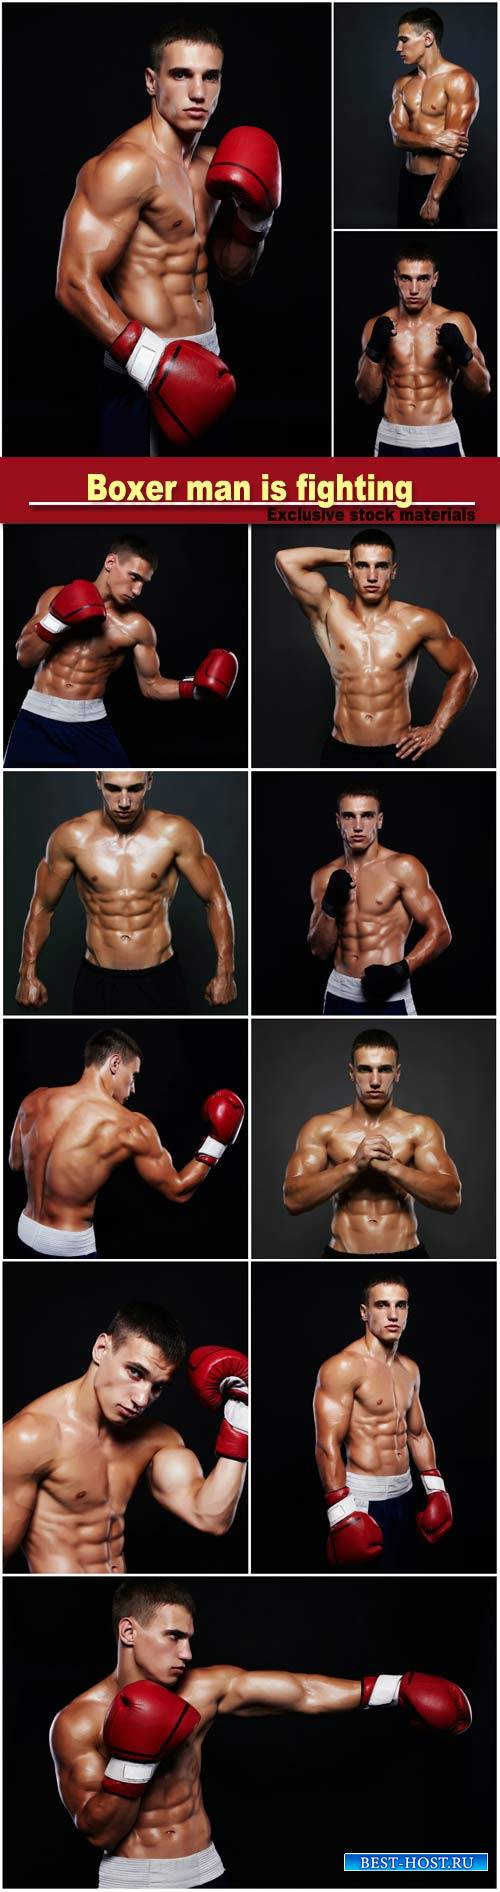 Boxer man is fighting, handsome muscular man, bodybuilding